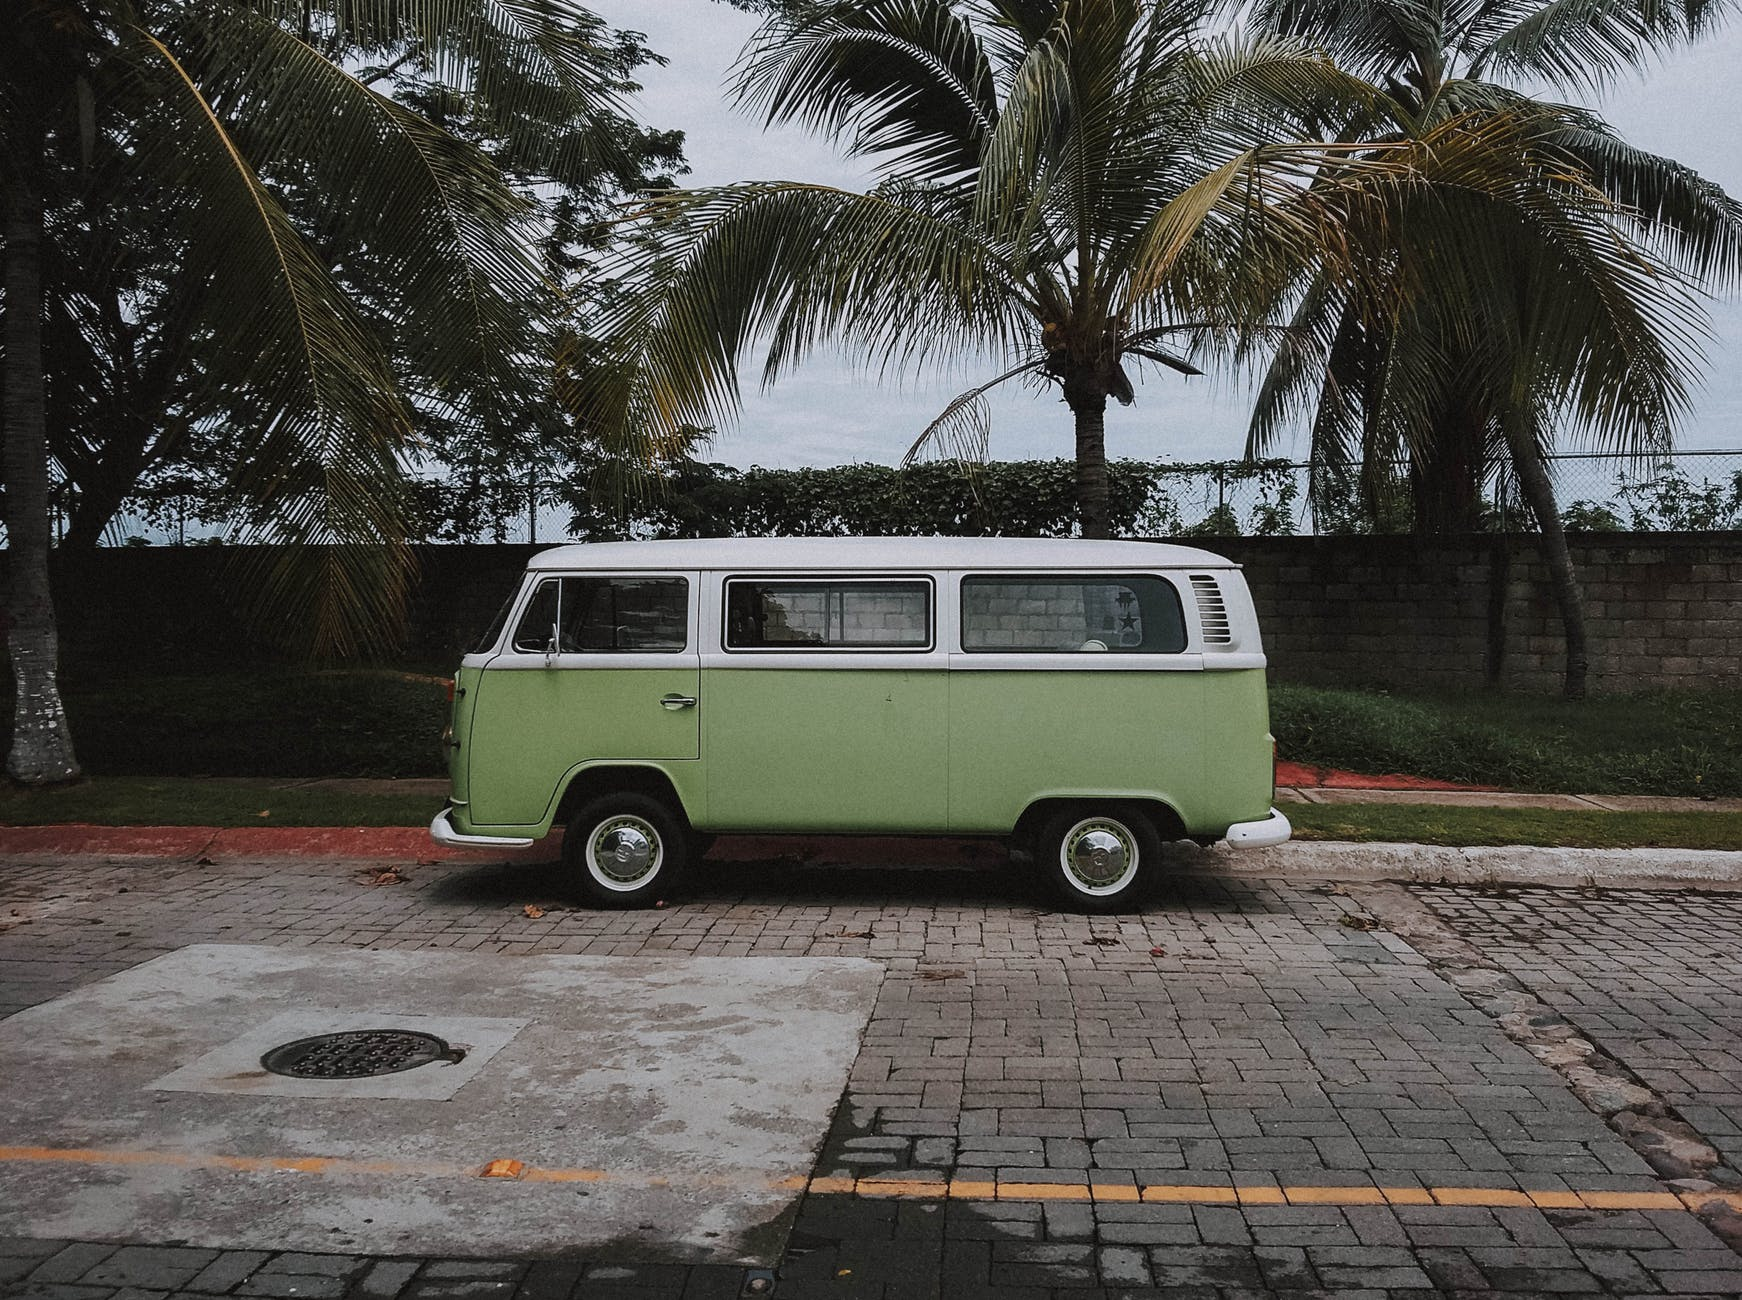 green volkswagen transporter van parked under coconut trees